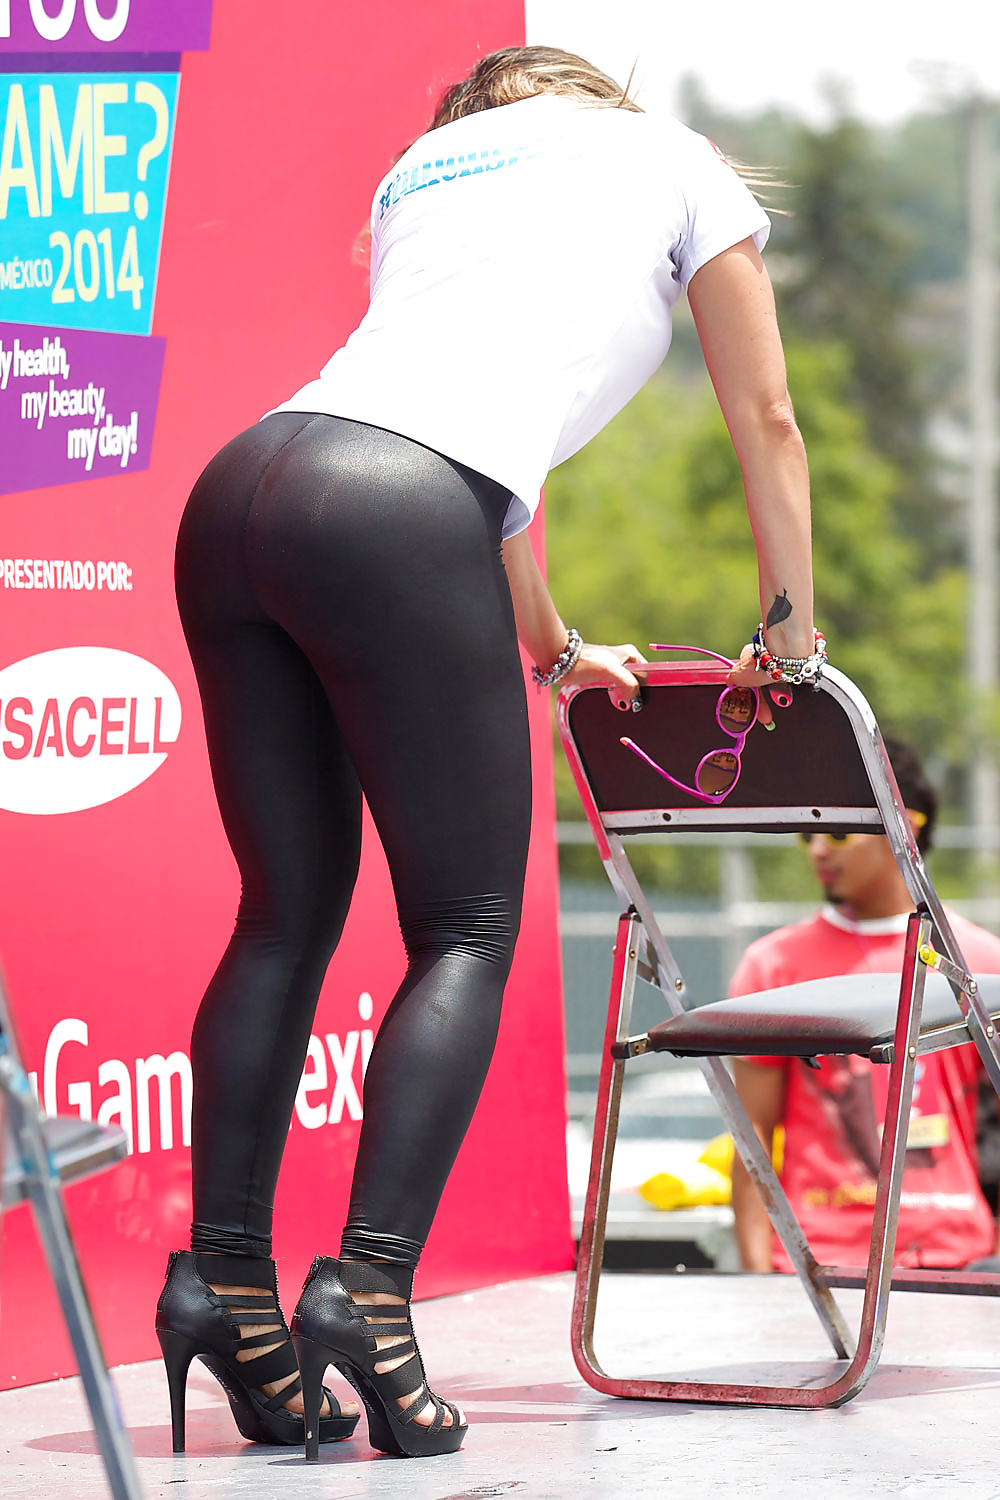 Pics of womens butts in spandex, bourgeoise blonde sexy tailleur